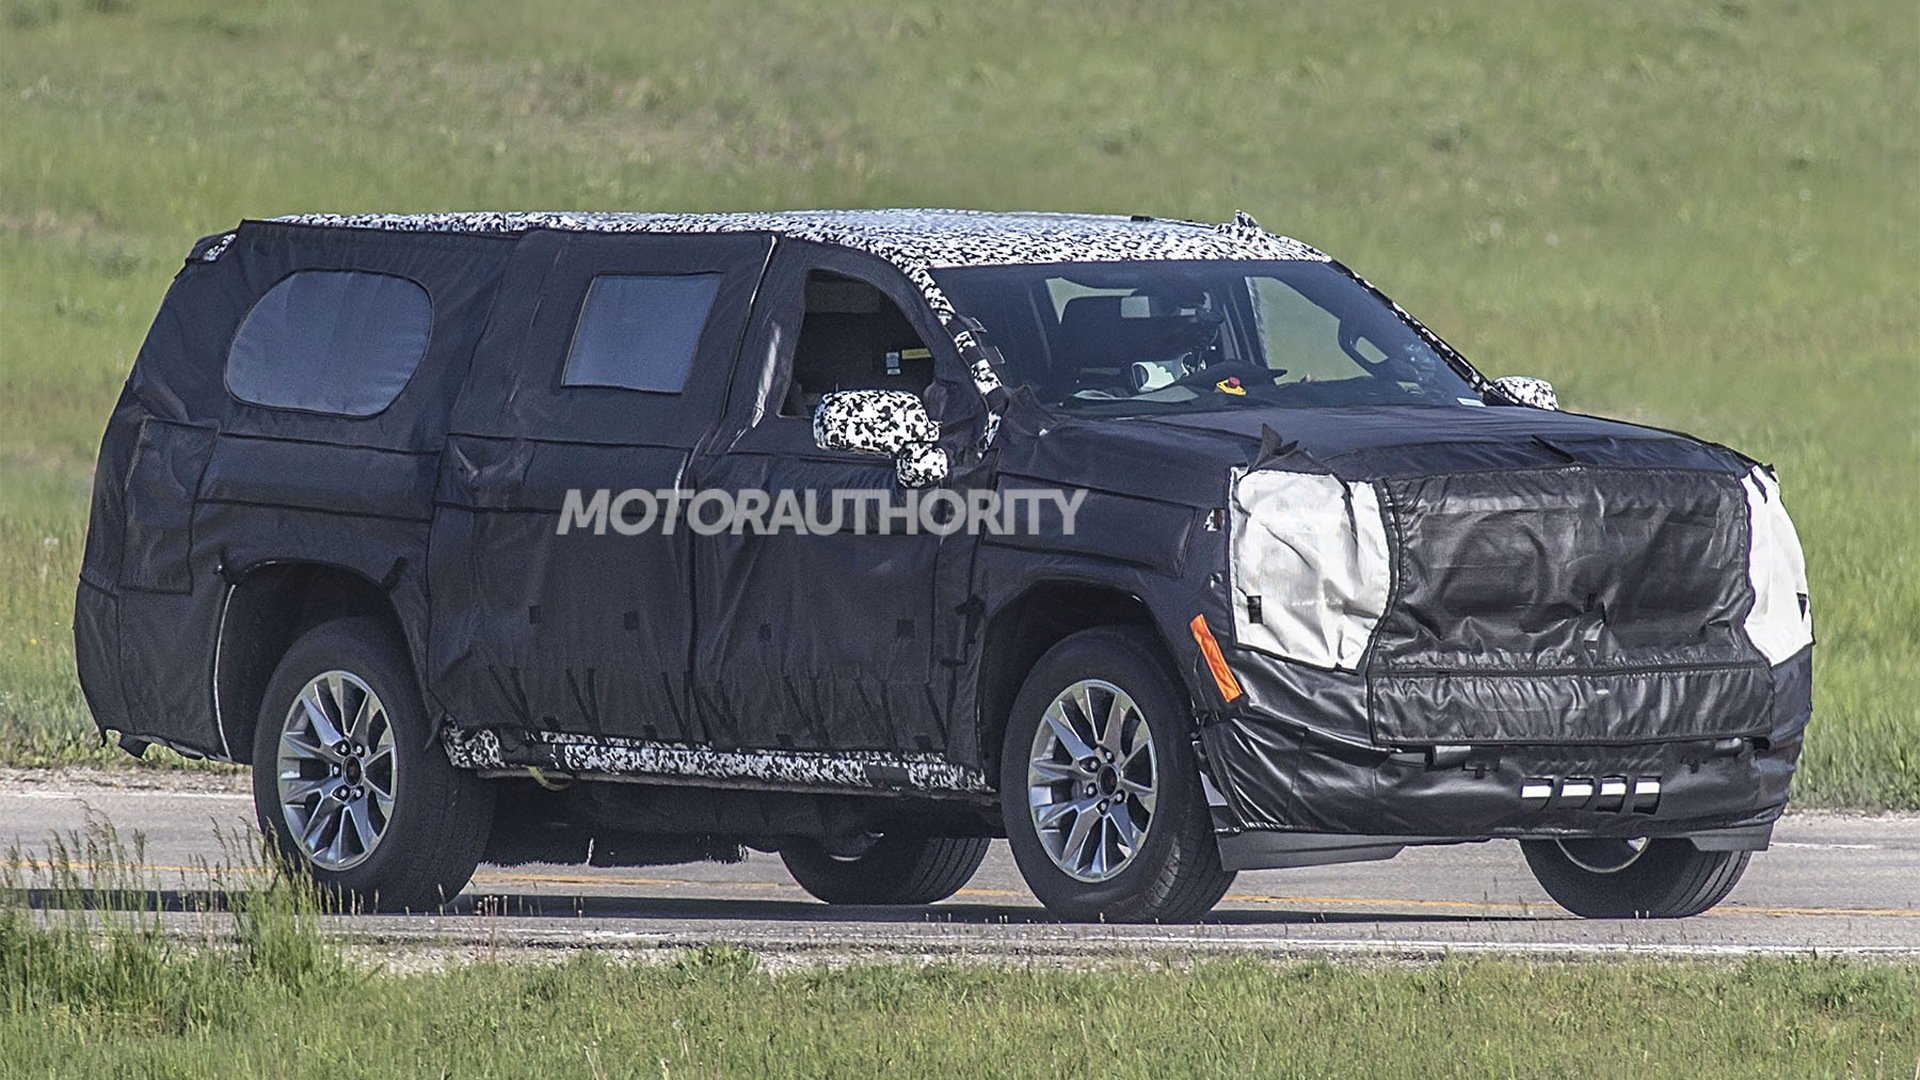 35 New When Will The 2020 Chevrolet Suburban Be Released Speed Test for When Will The 2020 Chevrolet Suburban Be Released